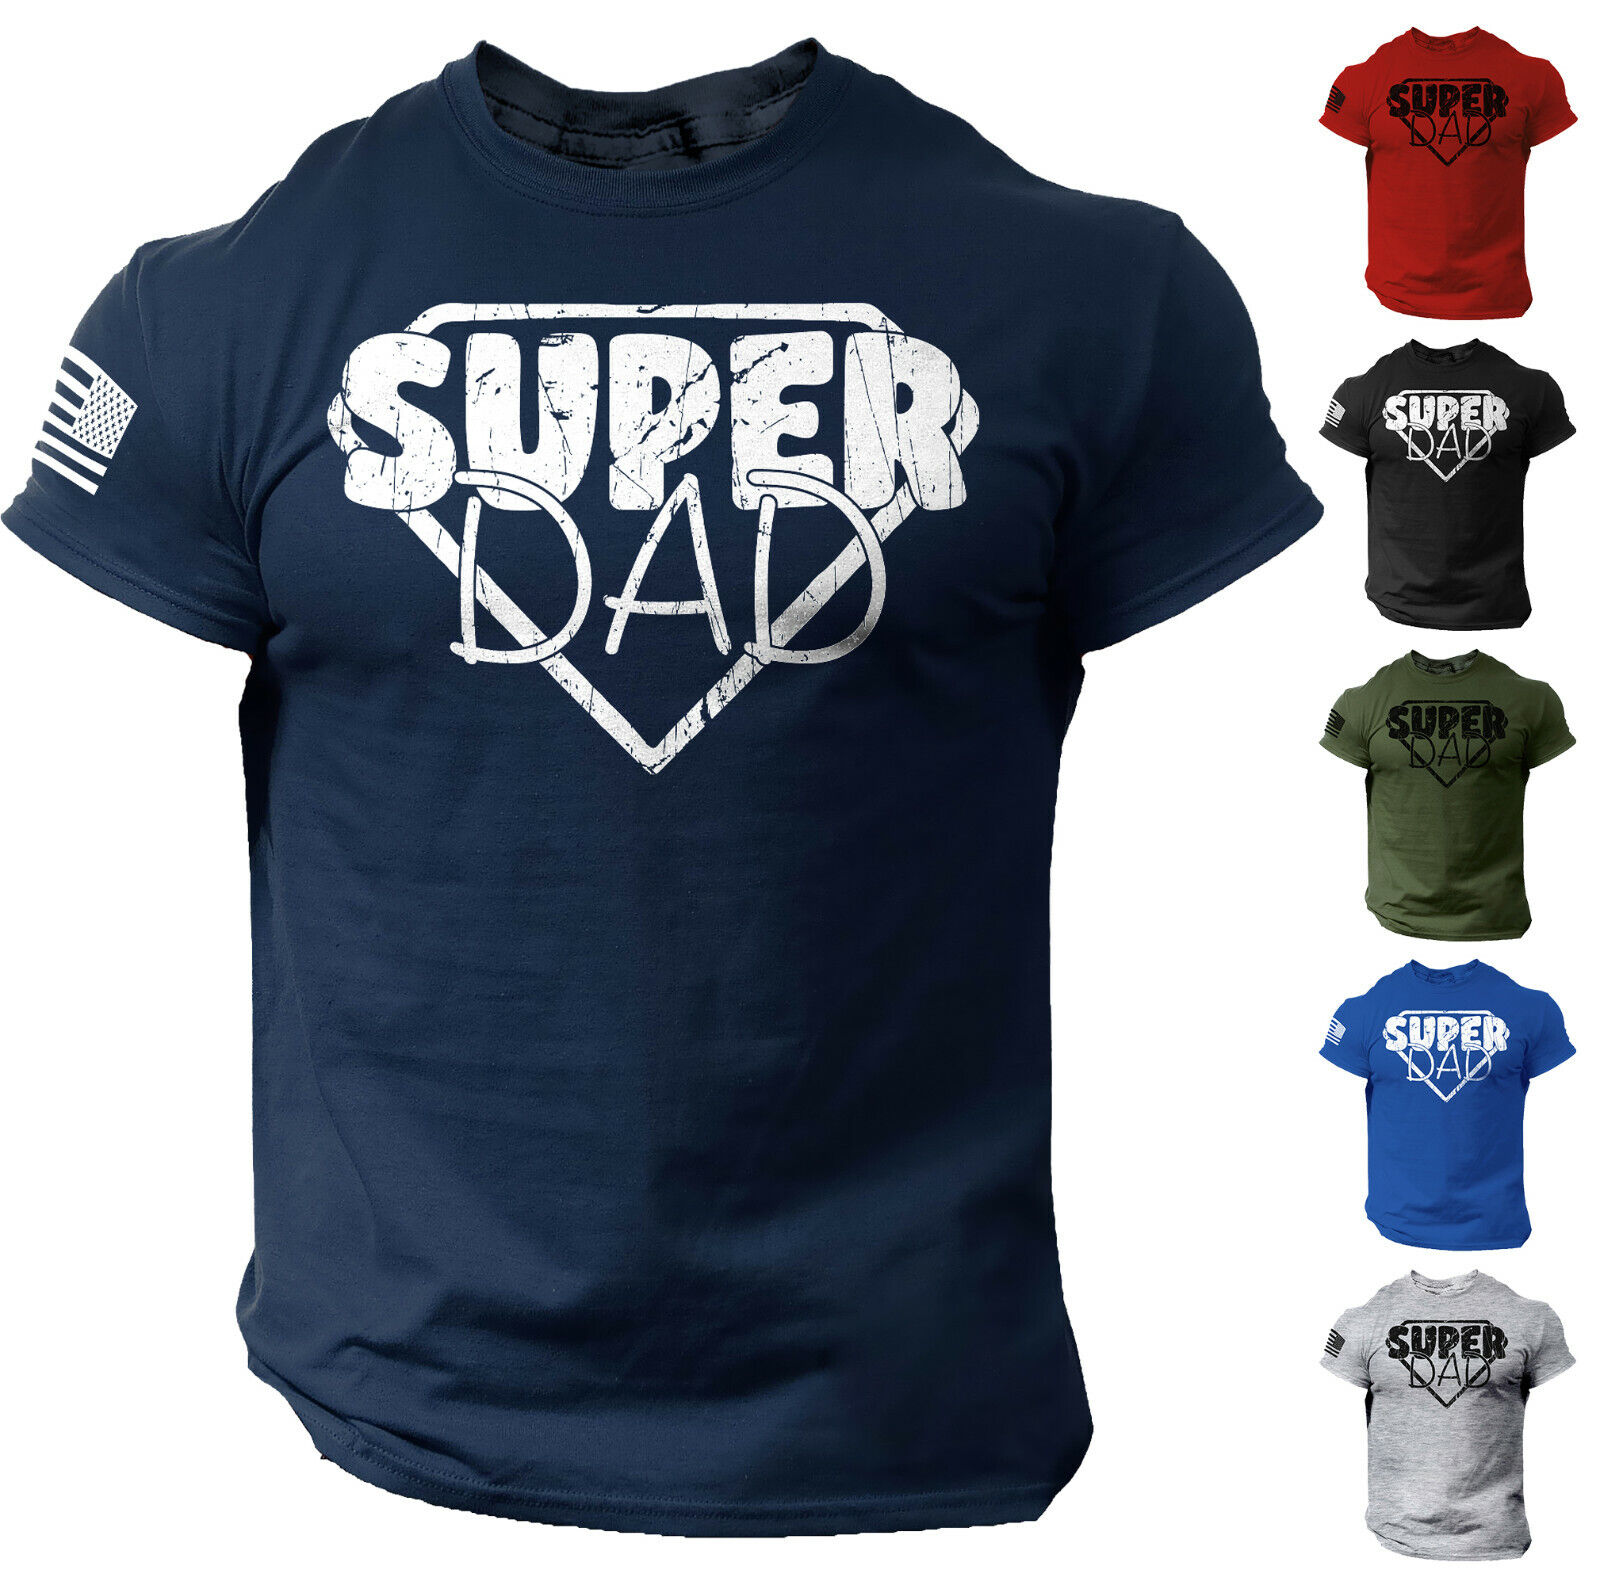 Men's Fathers Day T shirt Funny Dad Gift Super Dad Tee